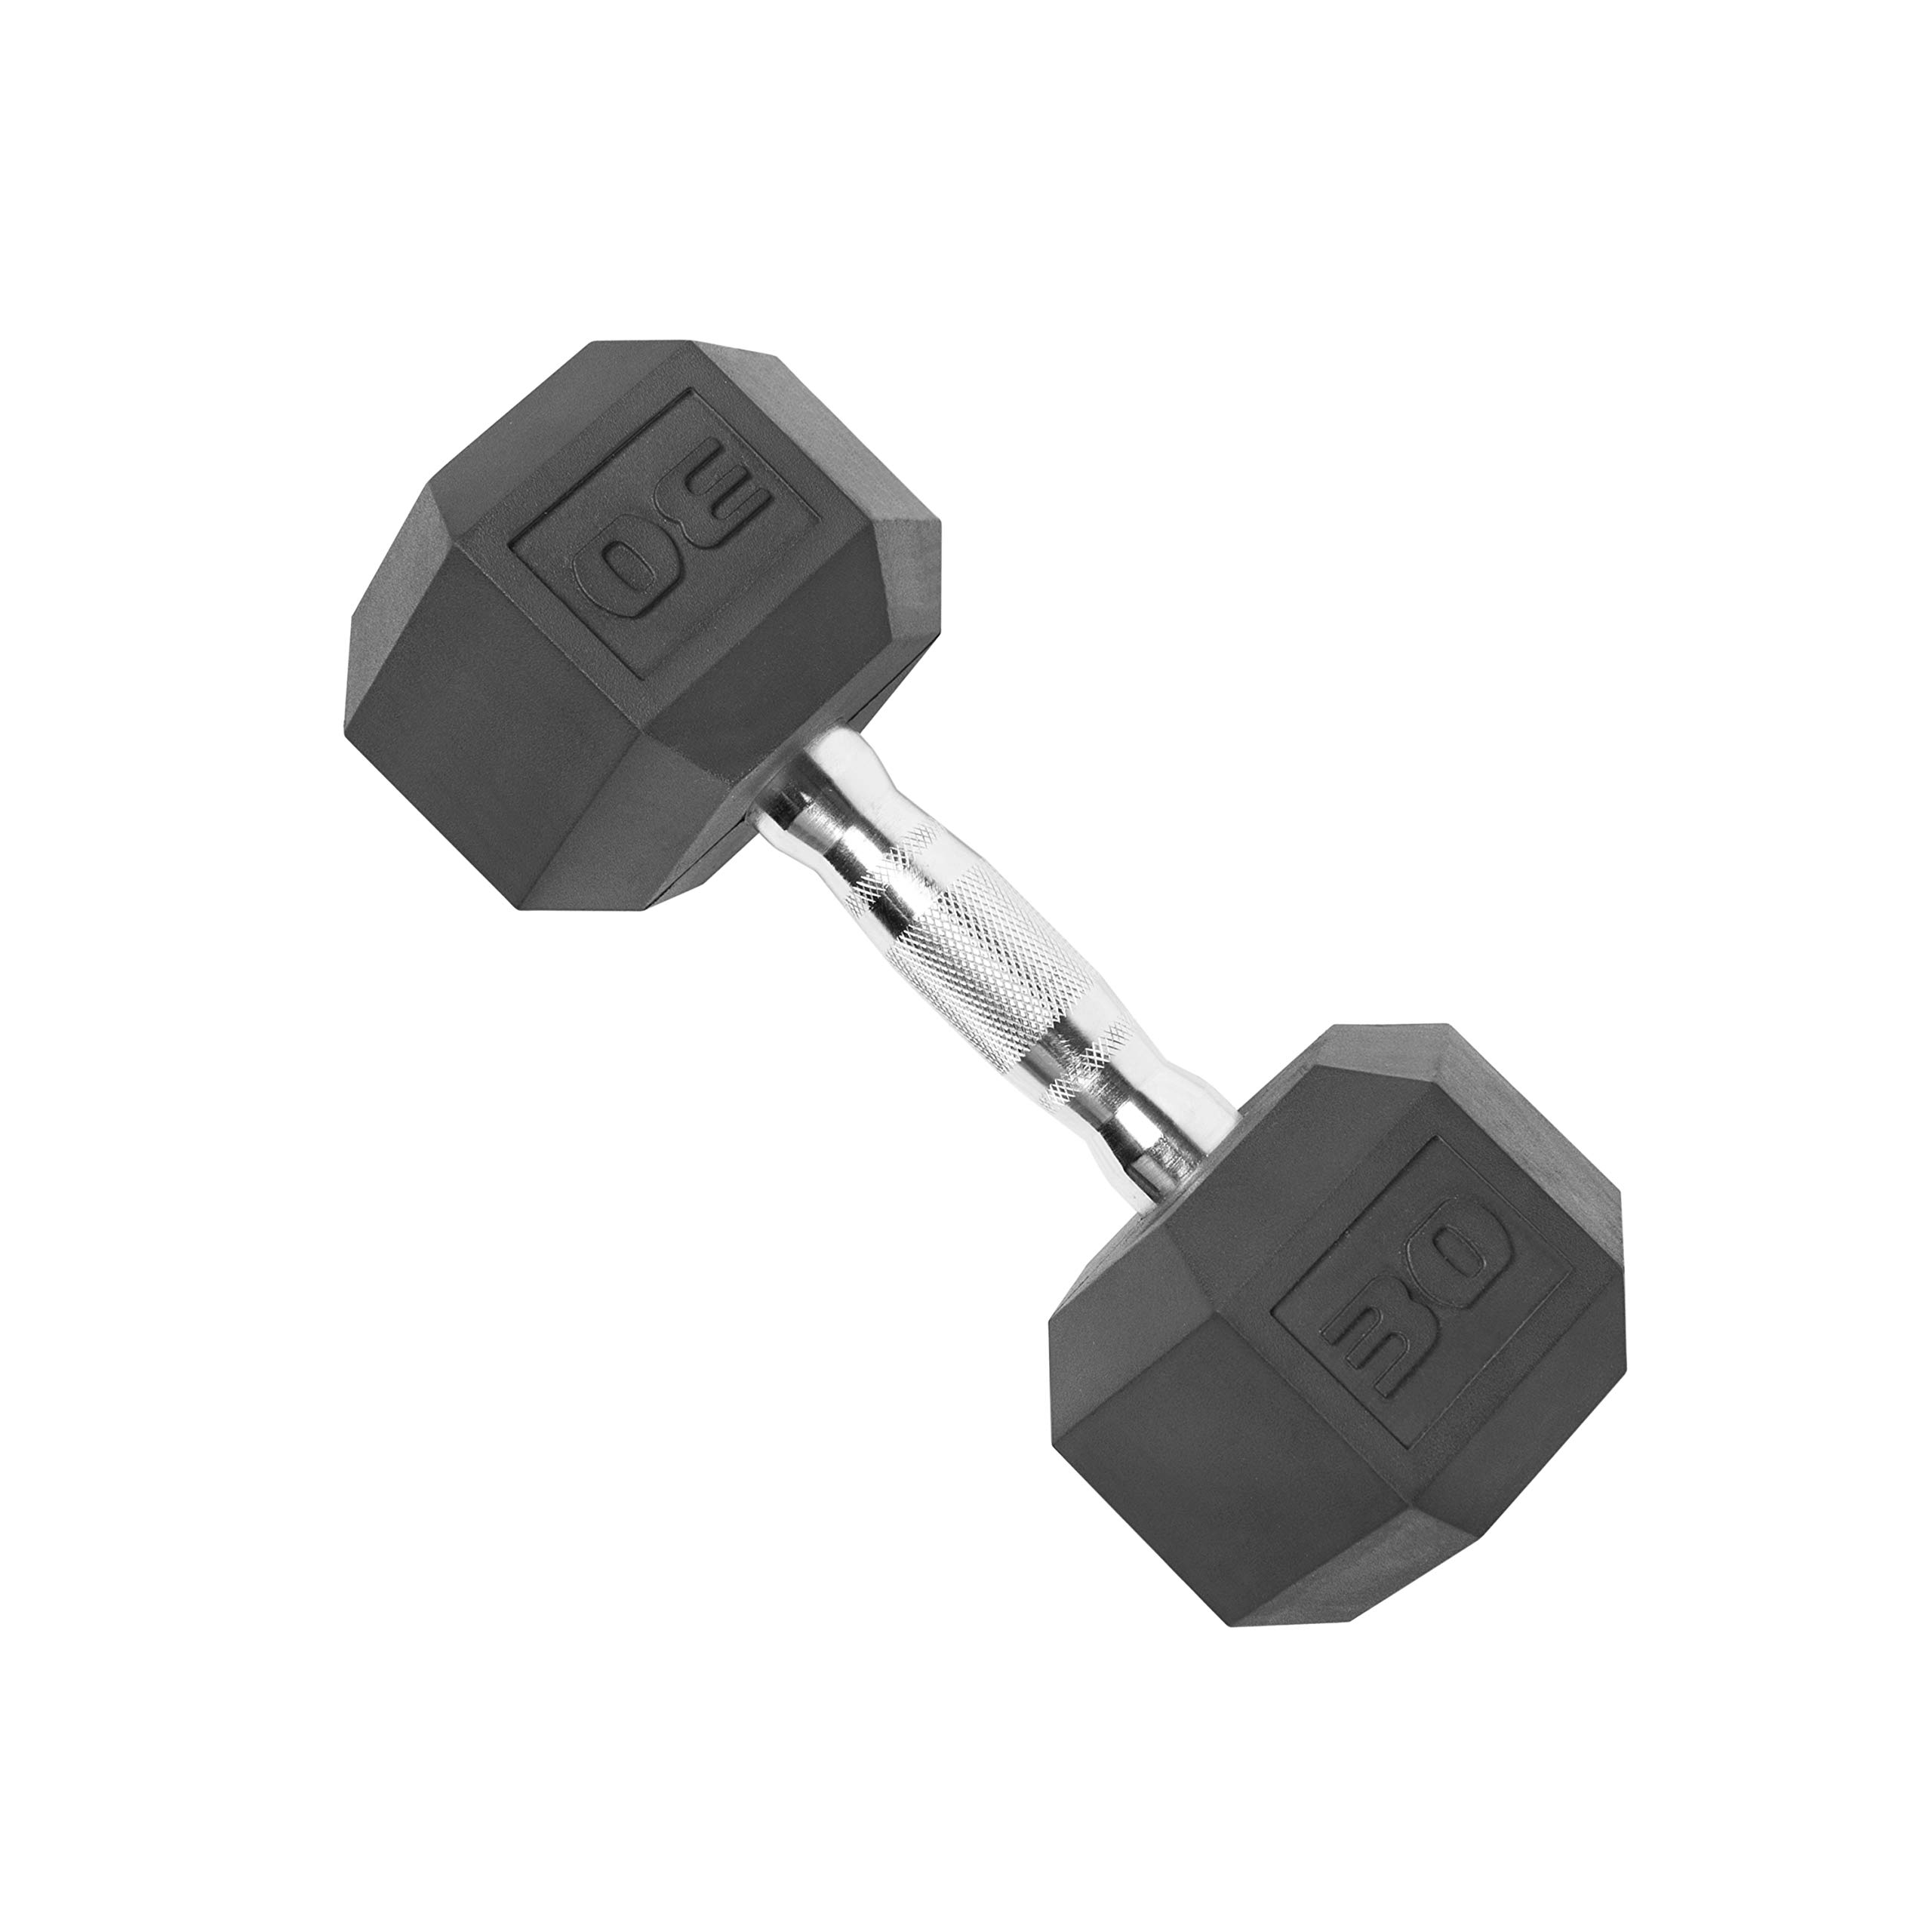 CAP Barbell SDR-030 Rubber Coated Hex Dumbbell with Contoured Chrome Handle (30-Pound), Black